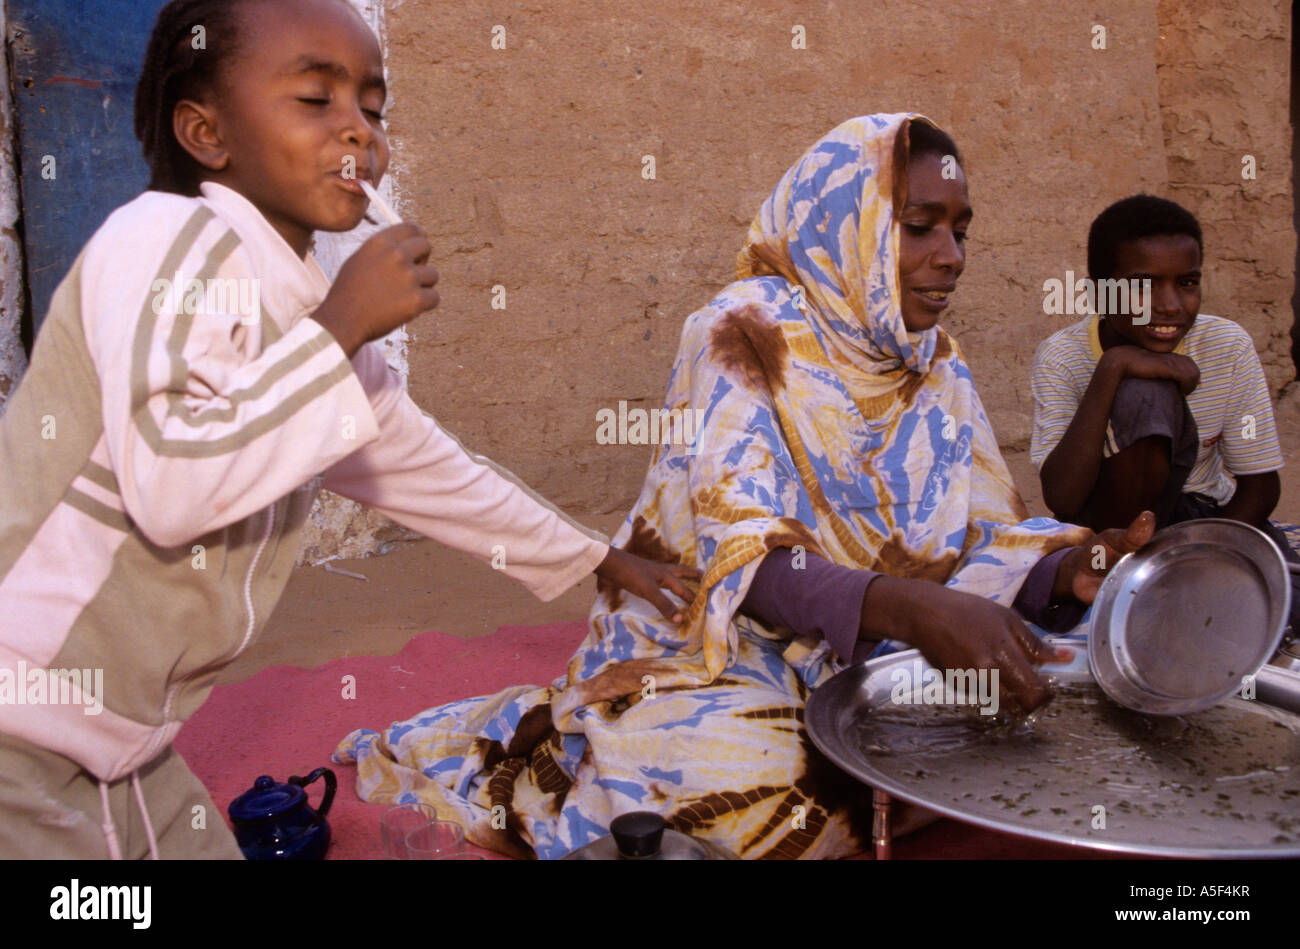 A Muslim family in the Saharawi refugee camp in Tindouf Western Algeria - Stock Image